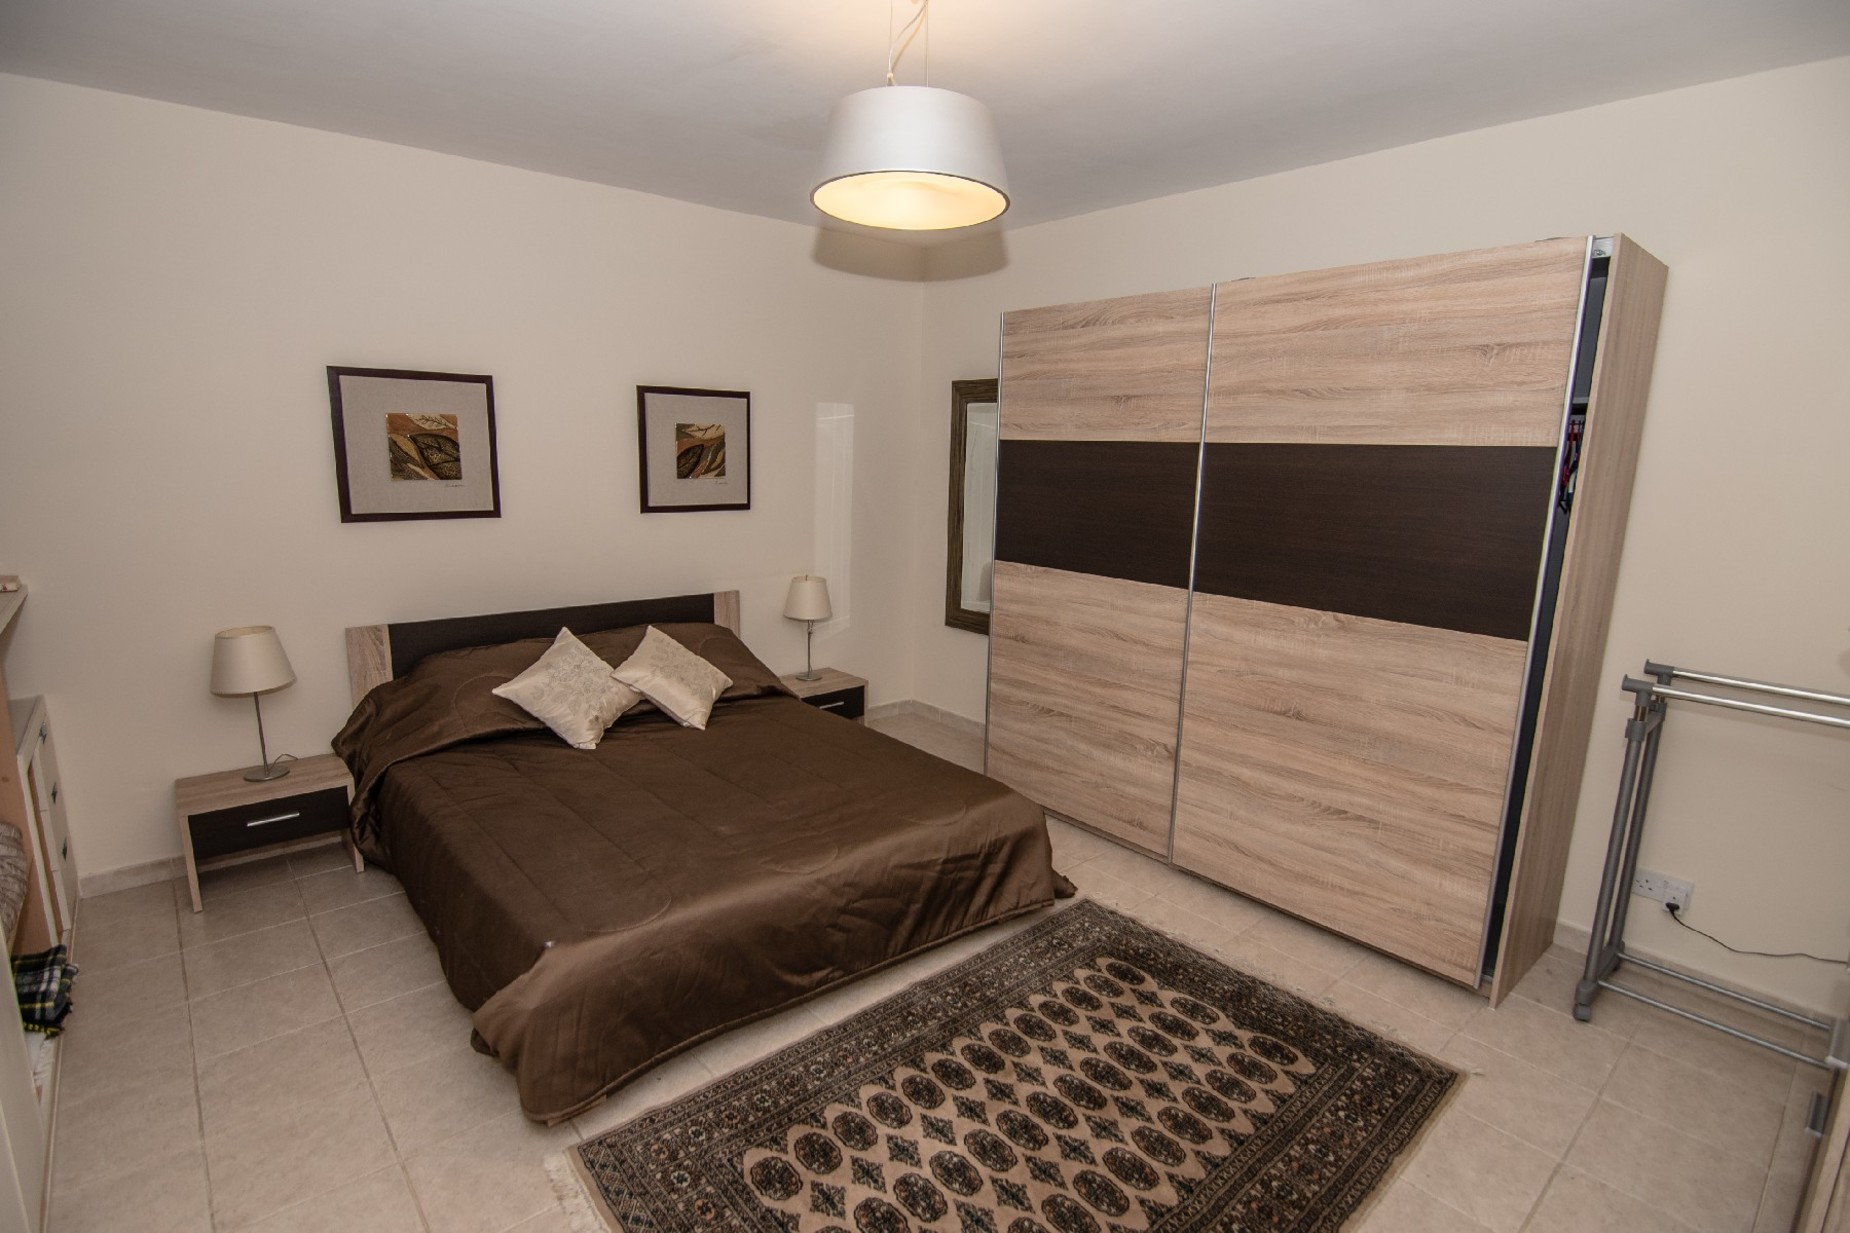 3 bed Apartment For Rent in Swieqi, Swieqi - thumb 6